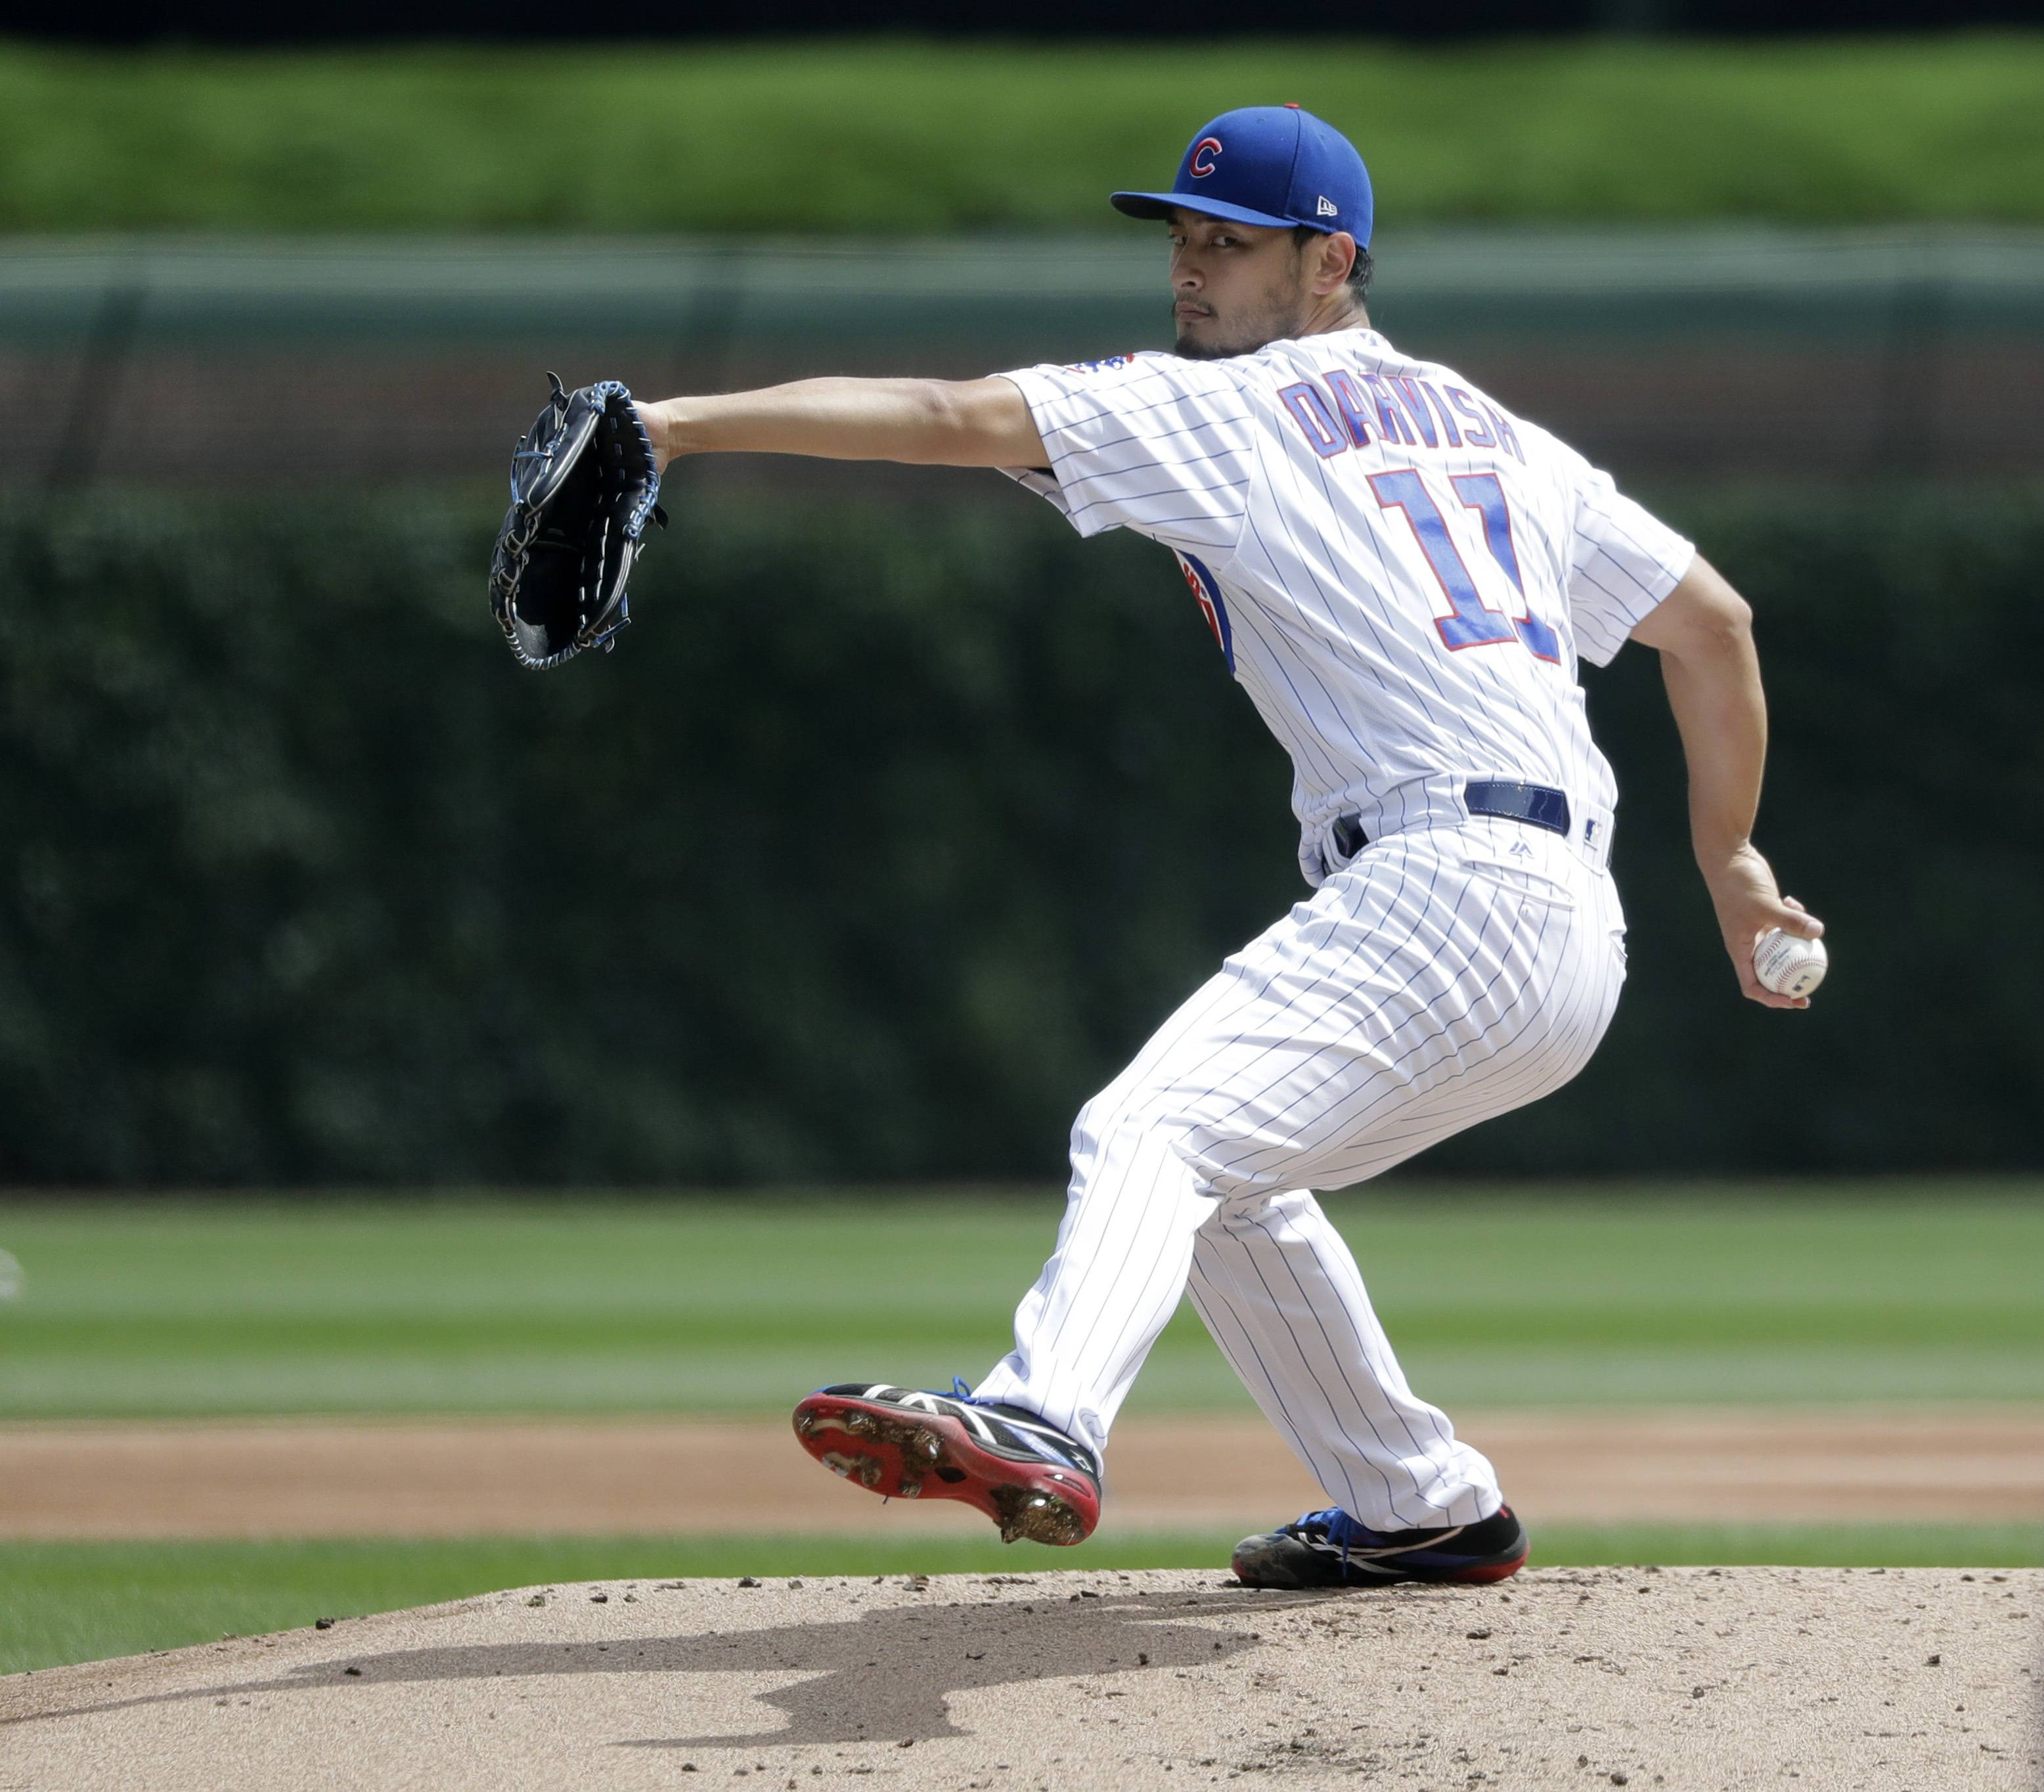 Chicago Cubs starting pitcher Yu Darvish pitches a simulated game before a baseball game between the Cubs and the Los Angeles Dodgers Wednesday, June 20, 2018, in Chicago. (AP Photo/Charles Rex Arbogast)